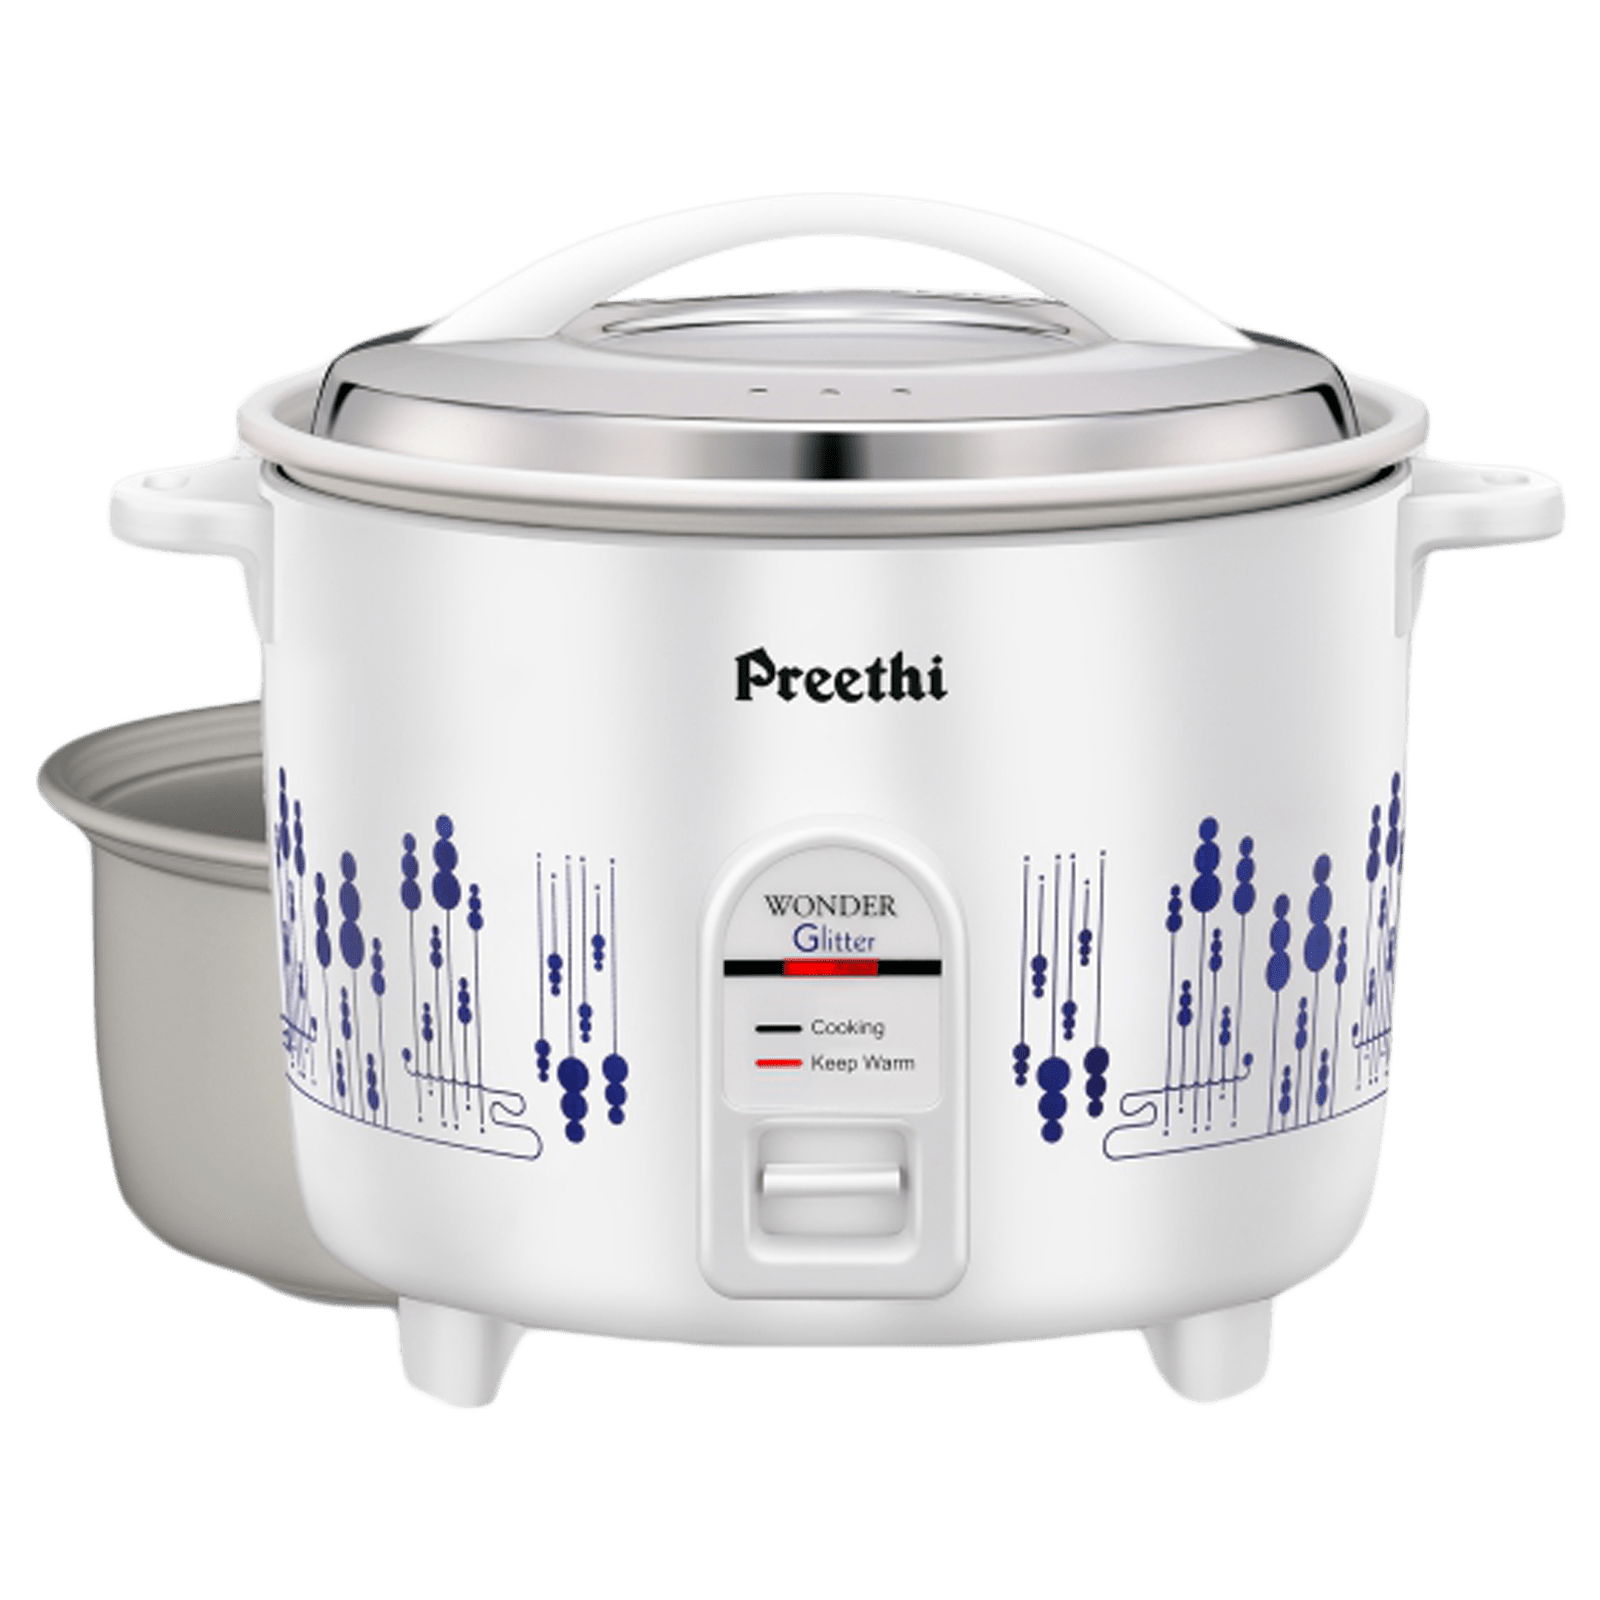 Preethi Glitter 2.2 Litres Electric Rice Cooker (Anodized Aluminium Pan, RC326 DP, White)